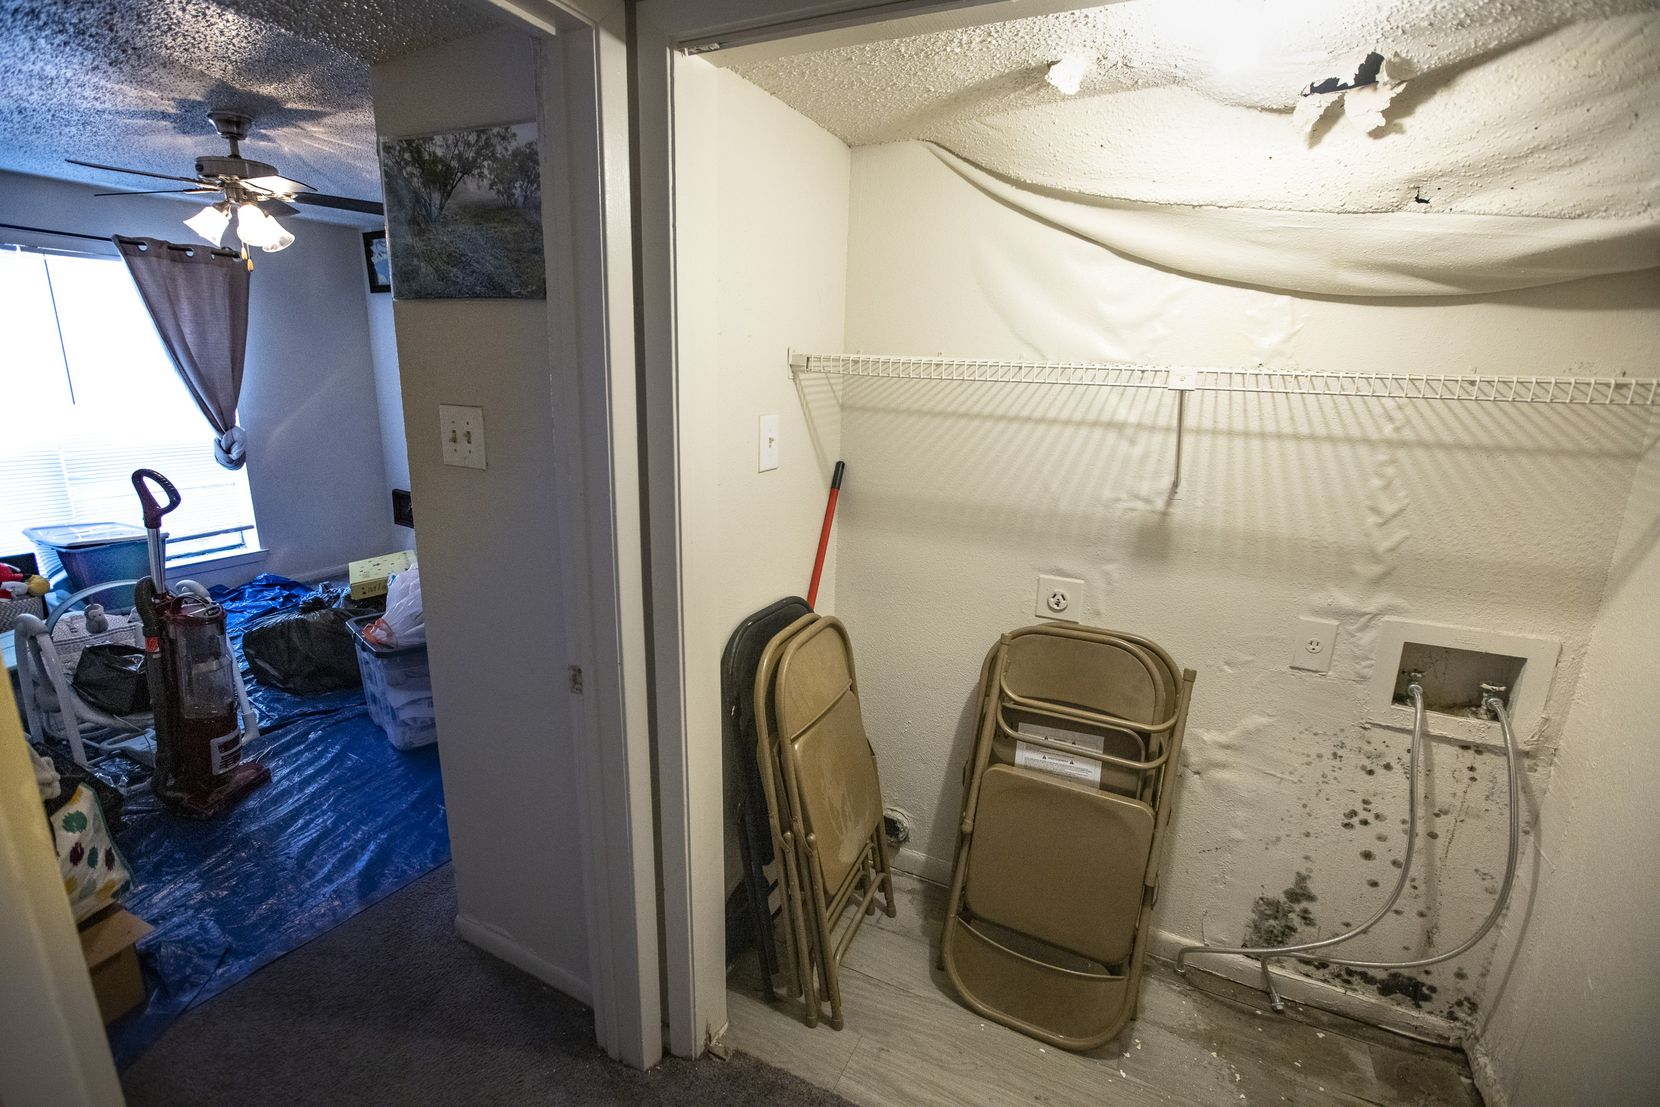 The ceiling droops, water pools on the floor, and mold grows on the walls in the bedroom and laundry room of Maria Magarin's apartment. Magarin's apartment sustained extensive water damage and lost hot water due to the epic snowstorm that hit a few weeks ago. By Friday, she was moving out.